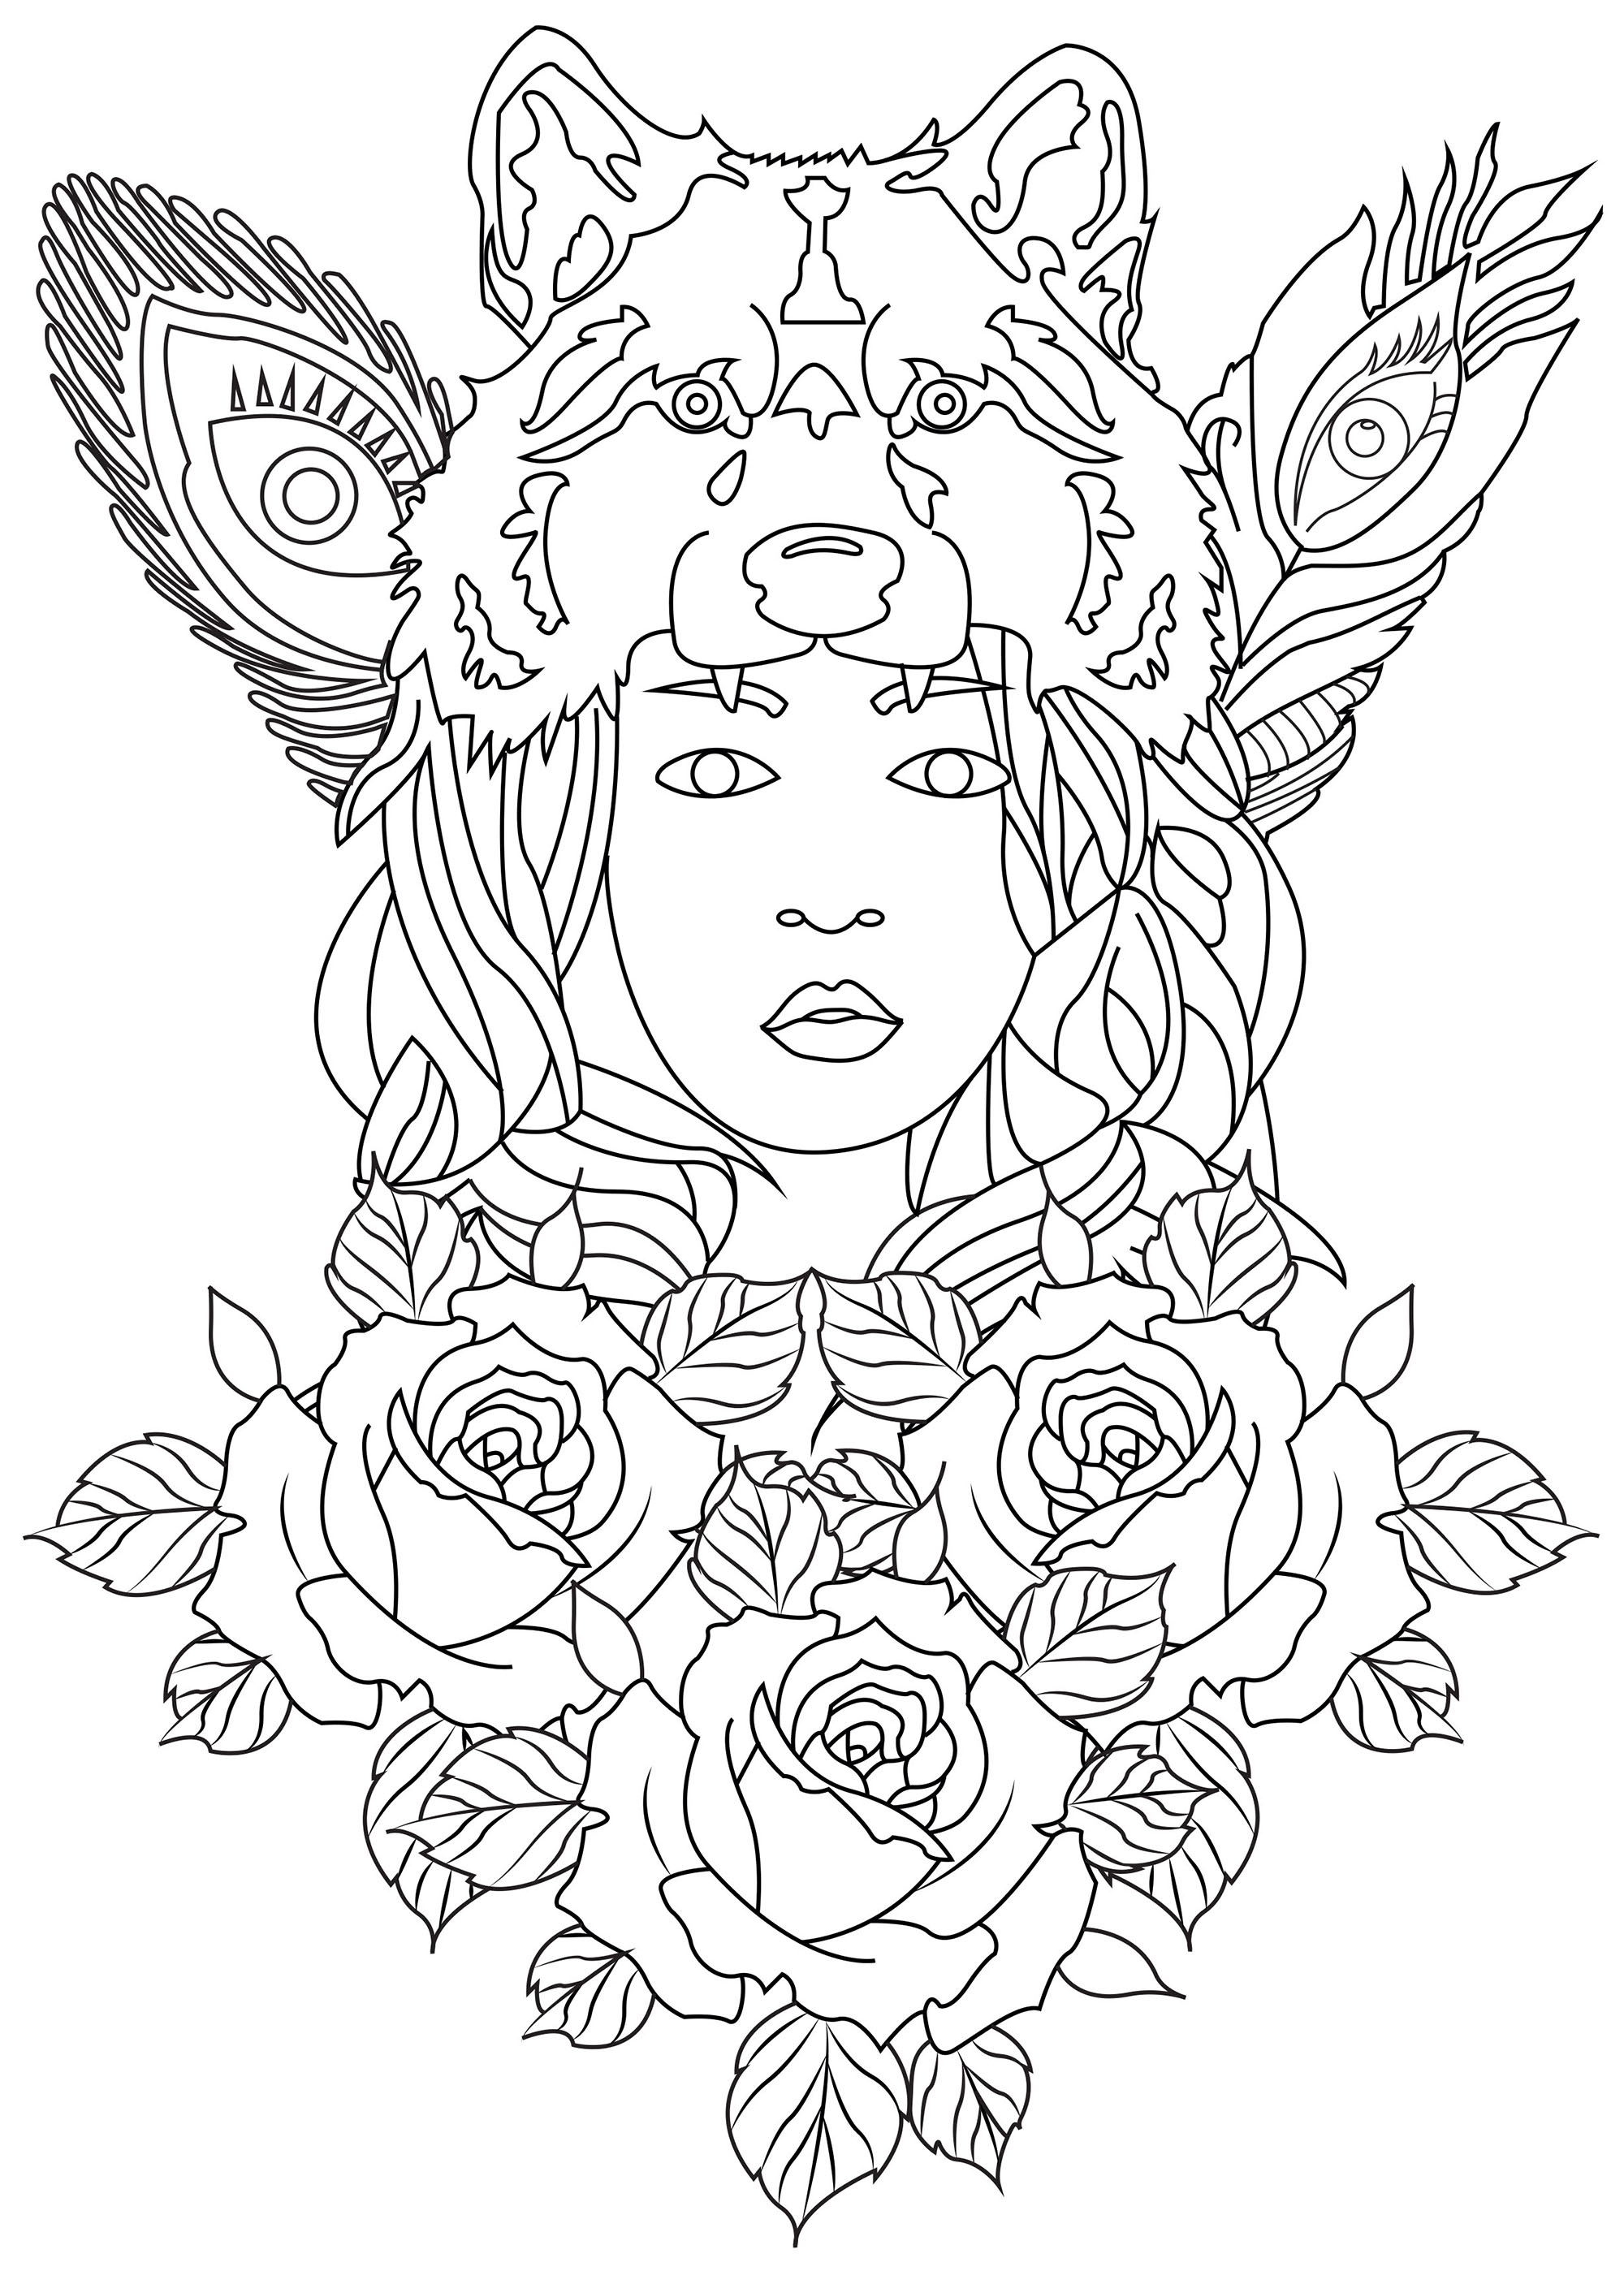 Rose - Coloring Pages for Adults